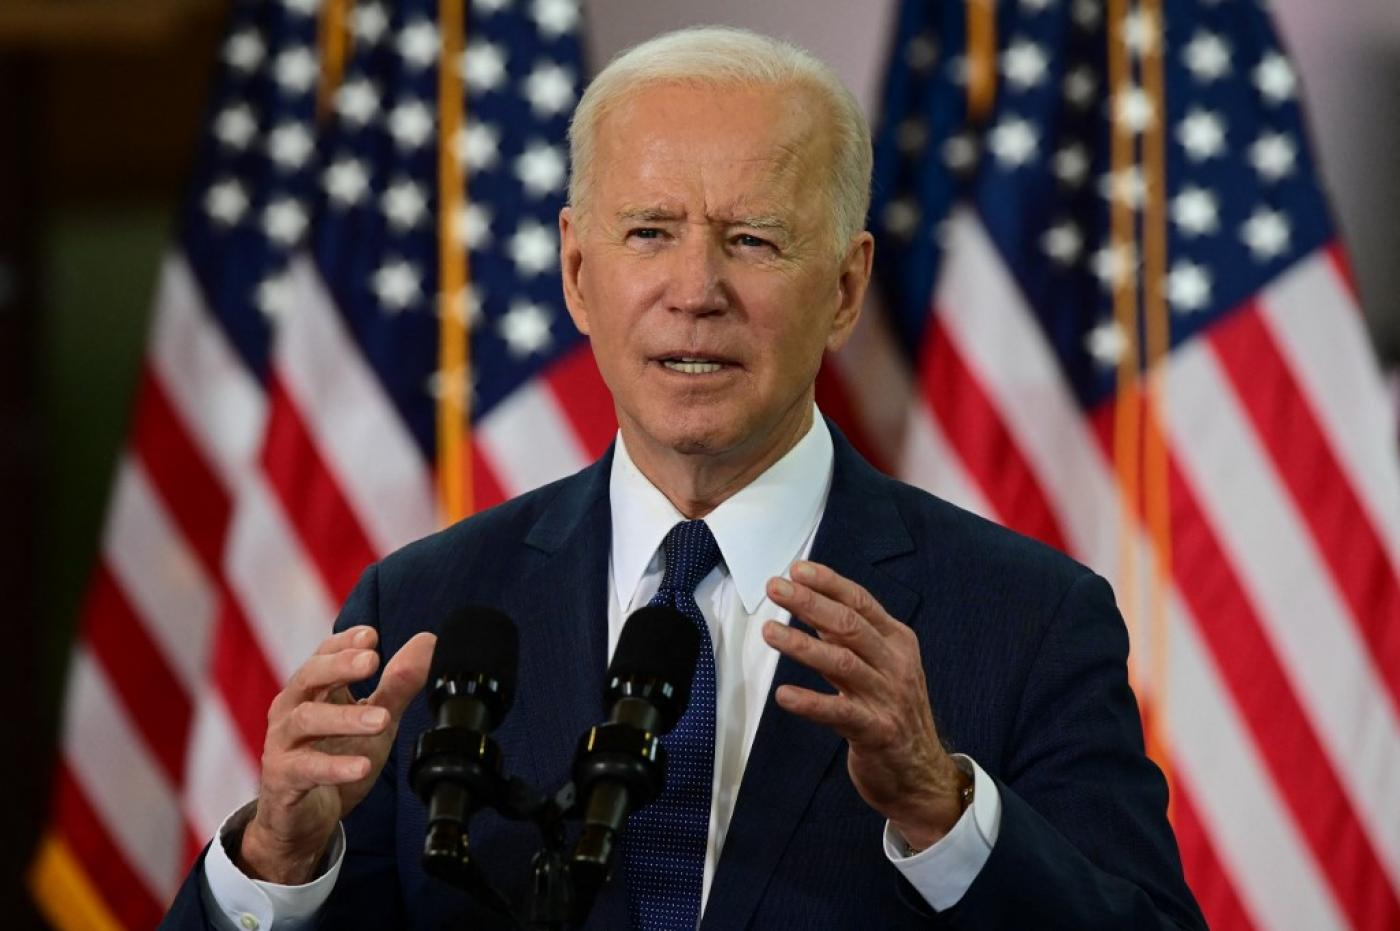 President Biden Turns His Back on Refugees By Low Refugee Admissions